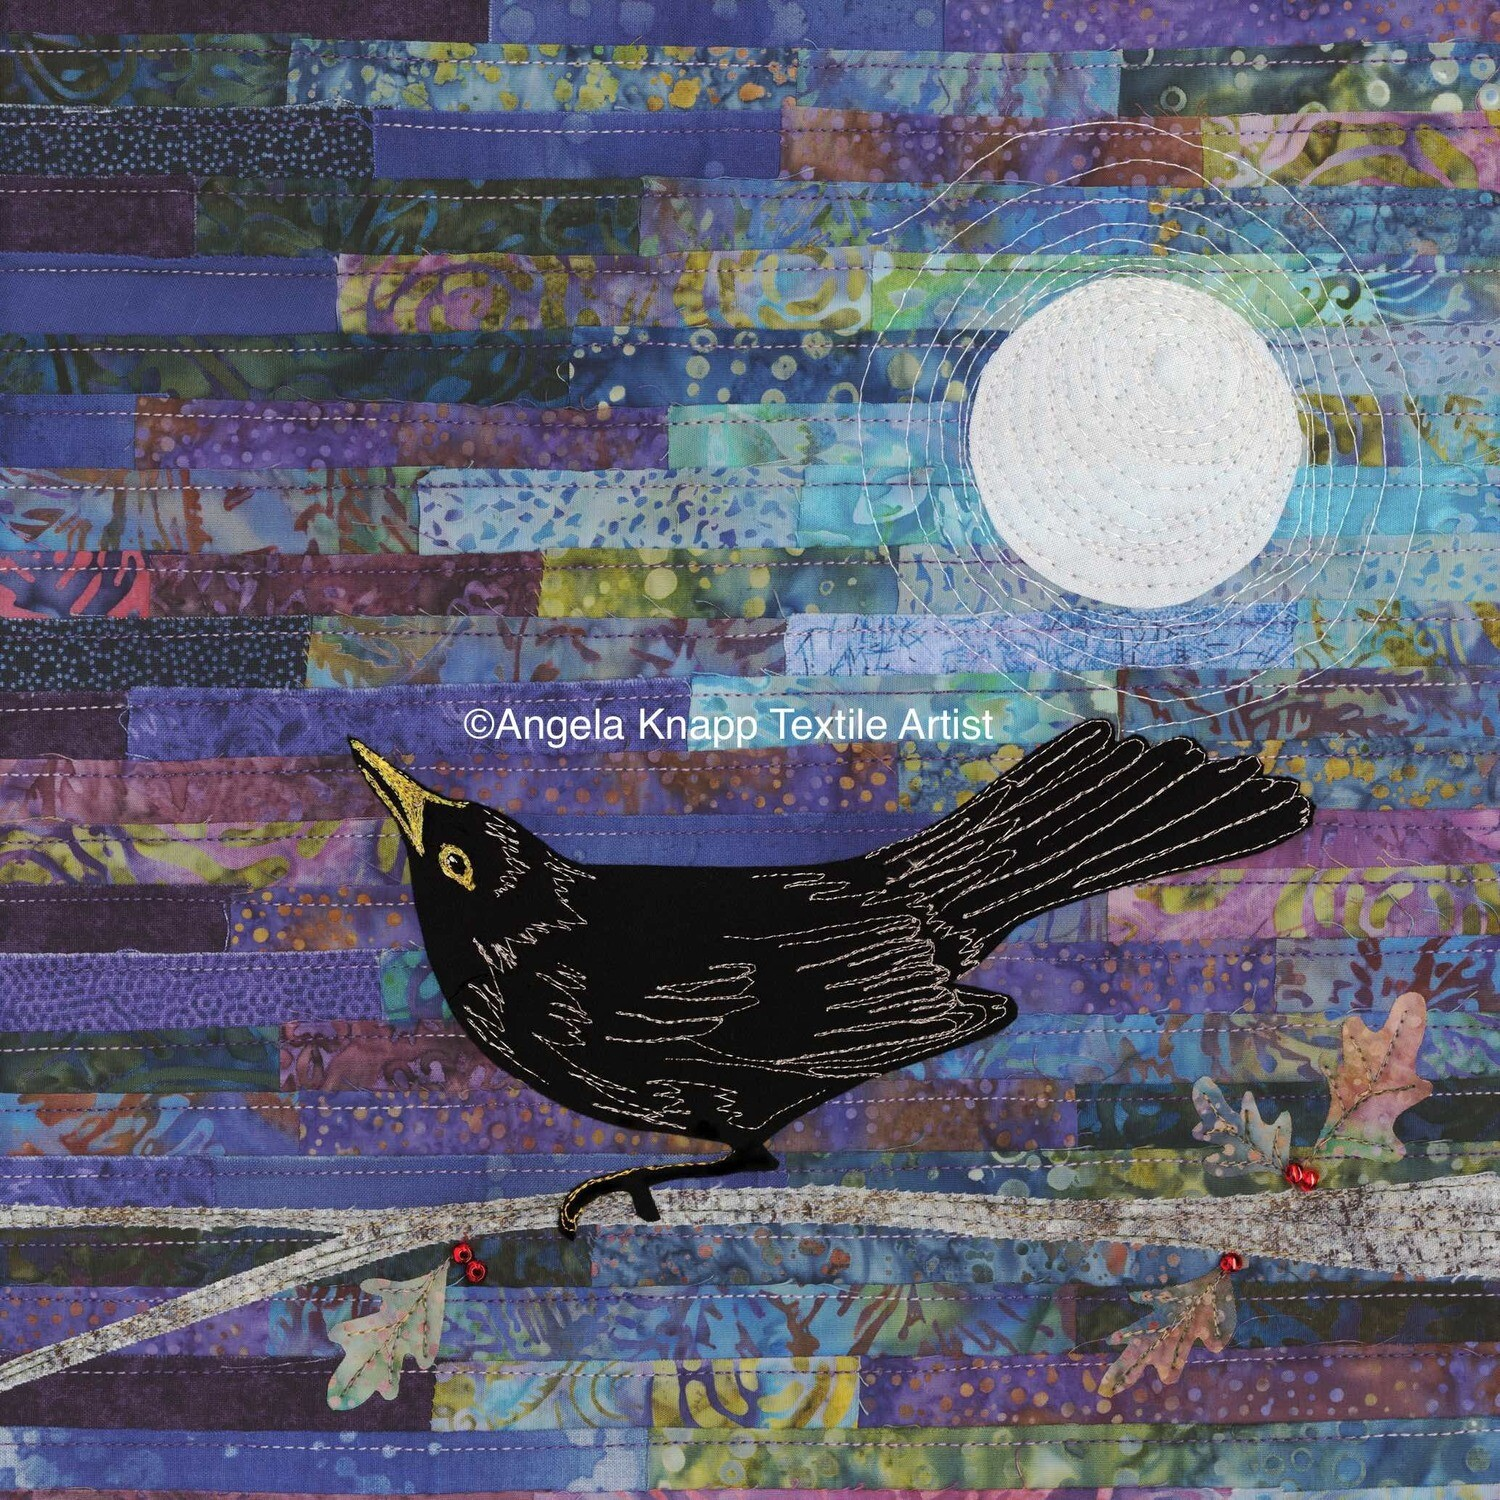 'Blackbird Singing in the dead of night' - Limited Edition Giclee Print